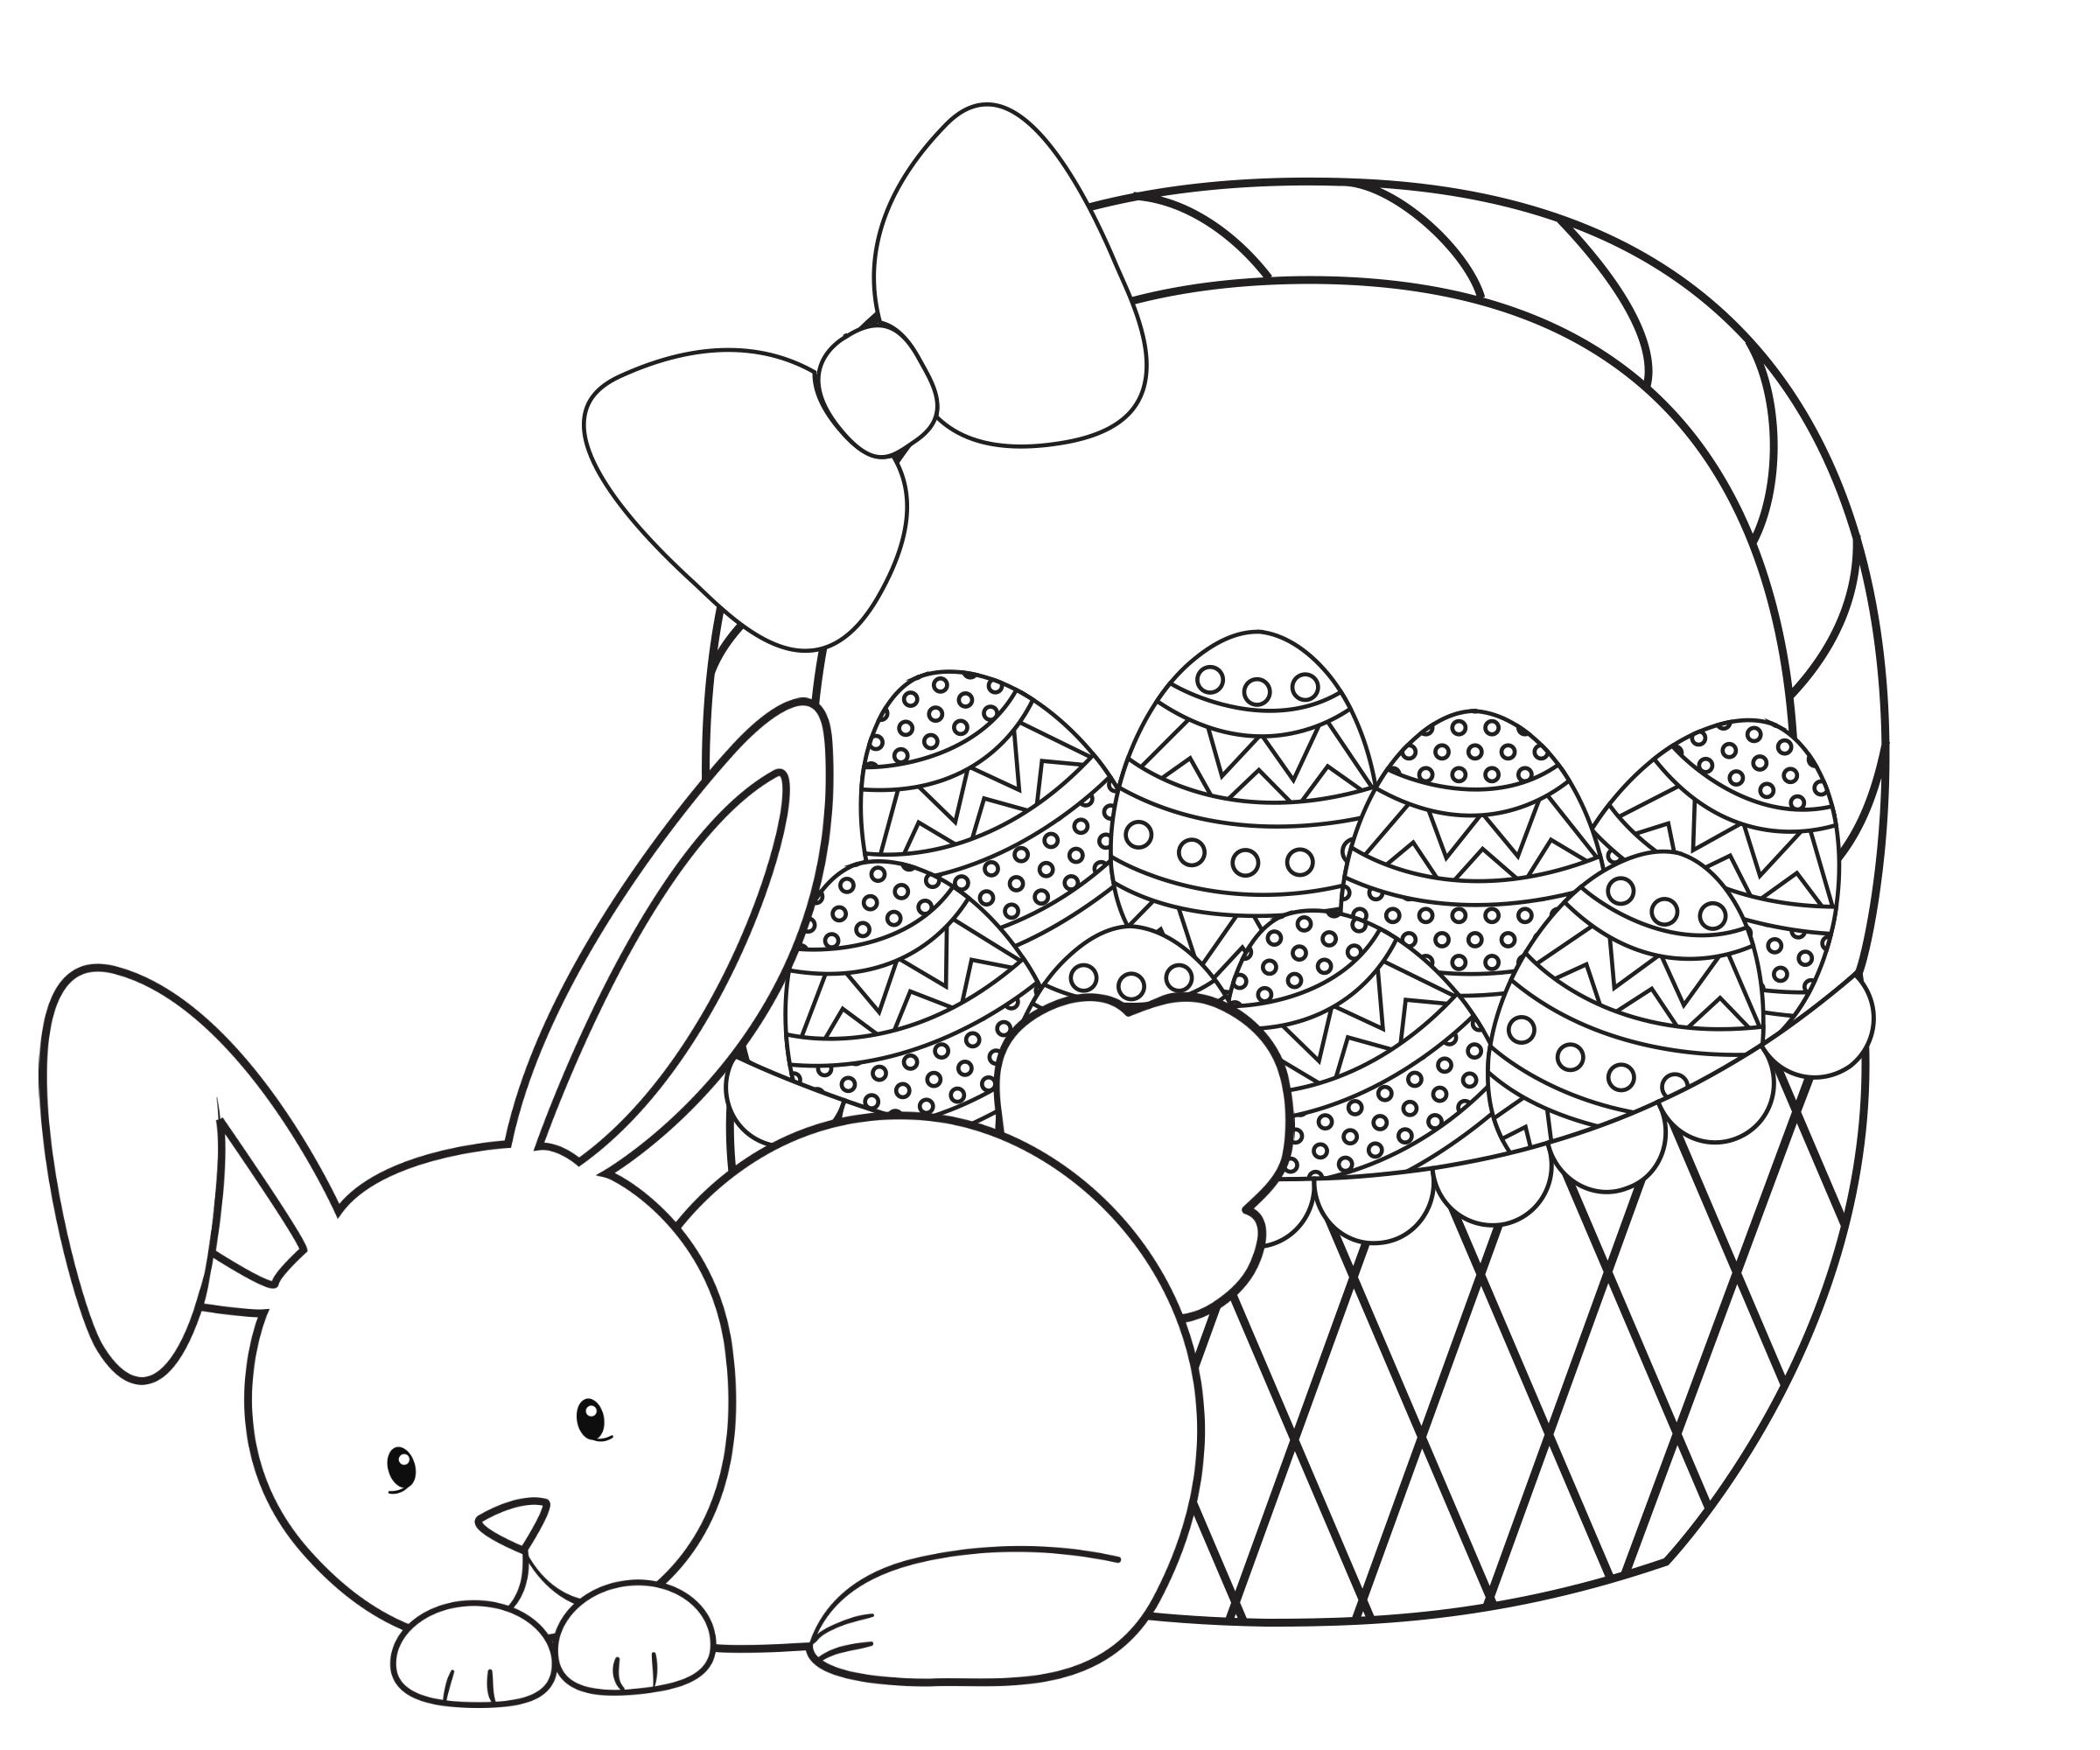 Easter Coloring Pages for Kids | Easter colouring, Easter and Easter ...